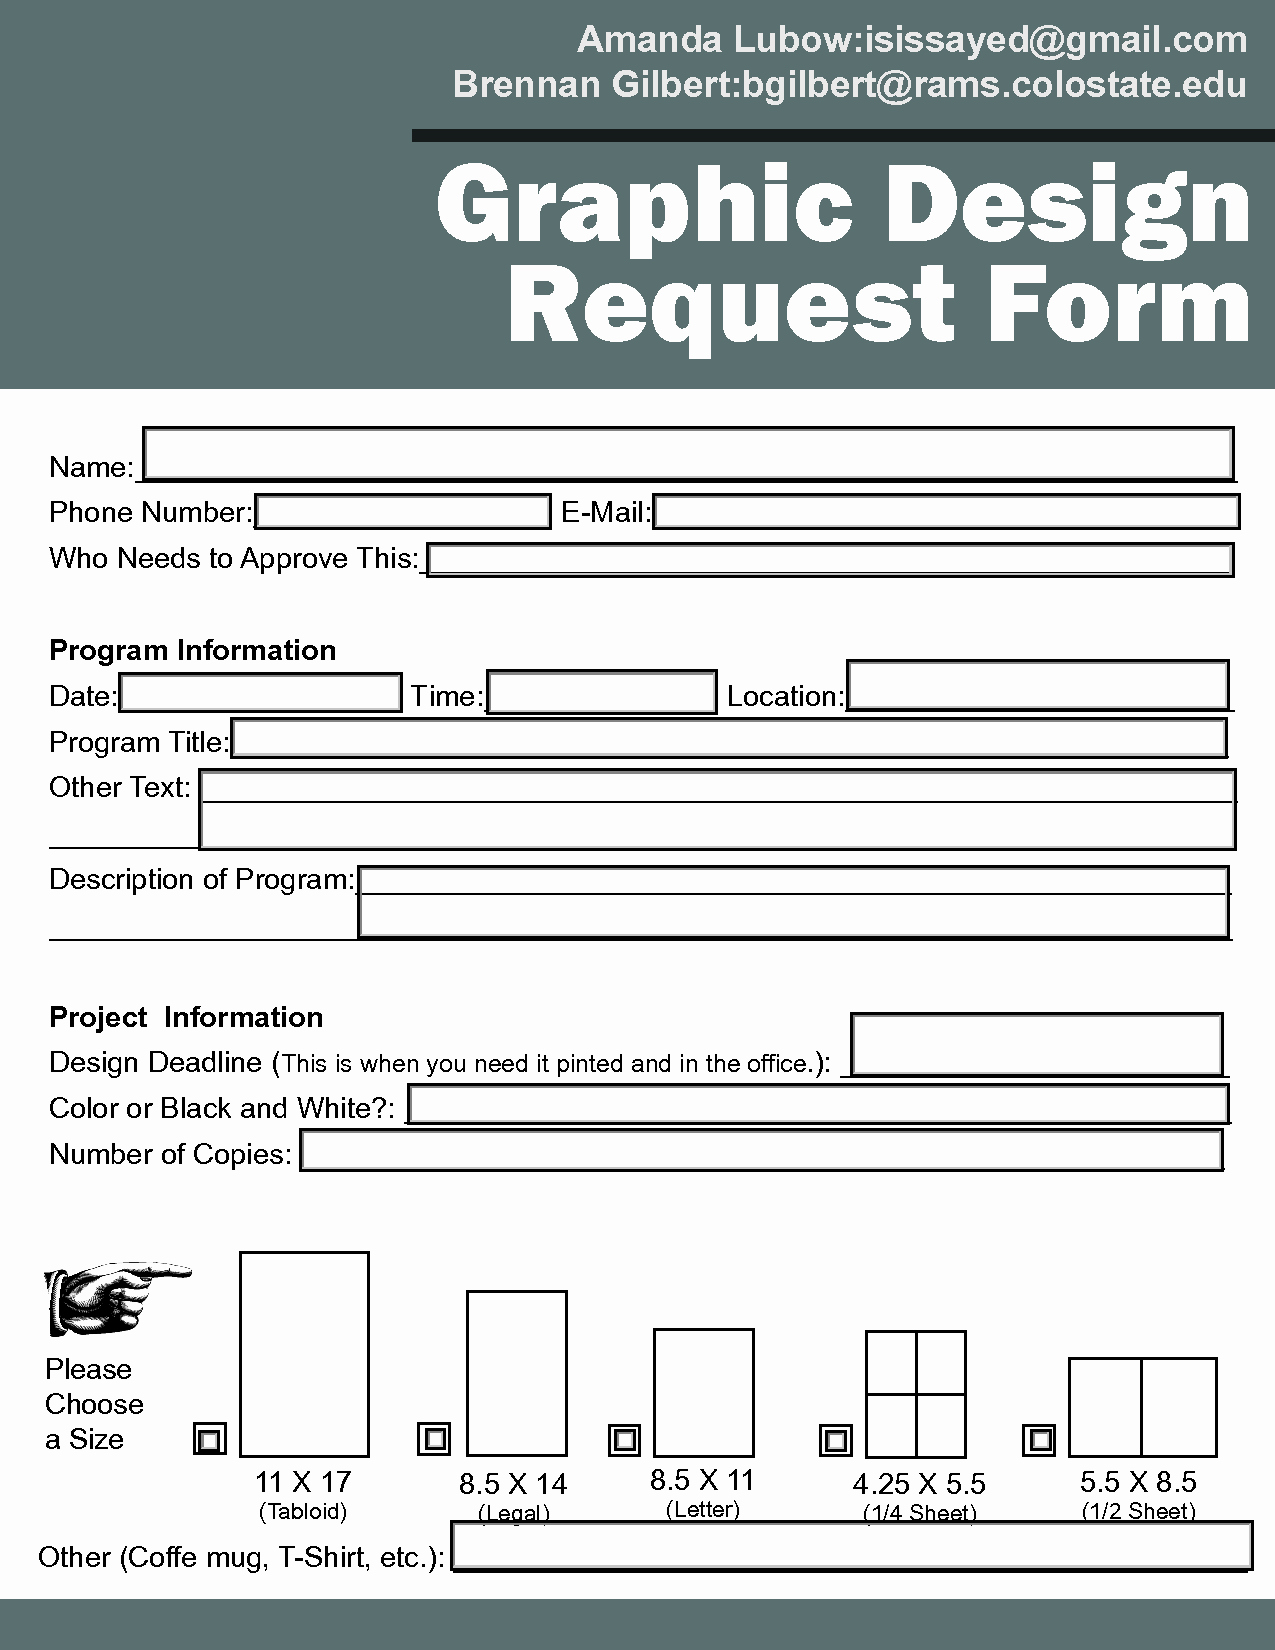 Design Request form Template Inspirational Graphic Design Contract Template